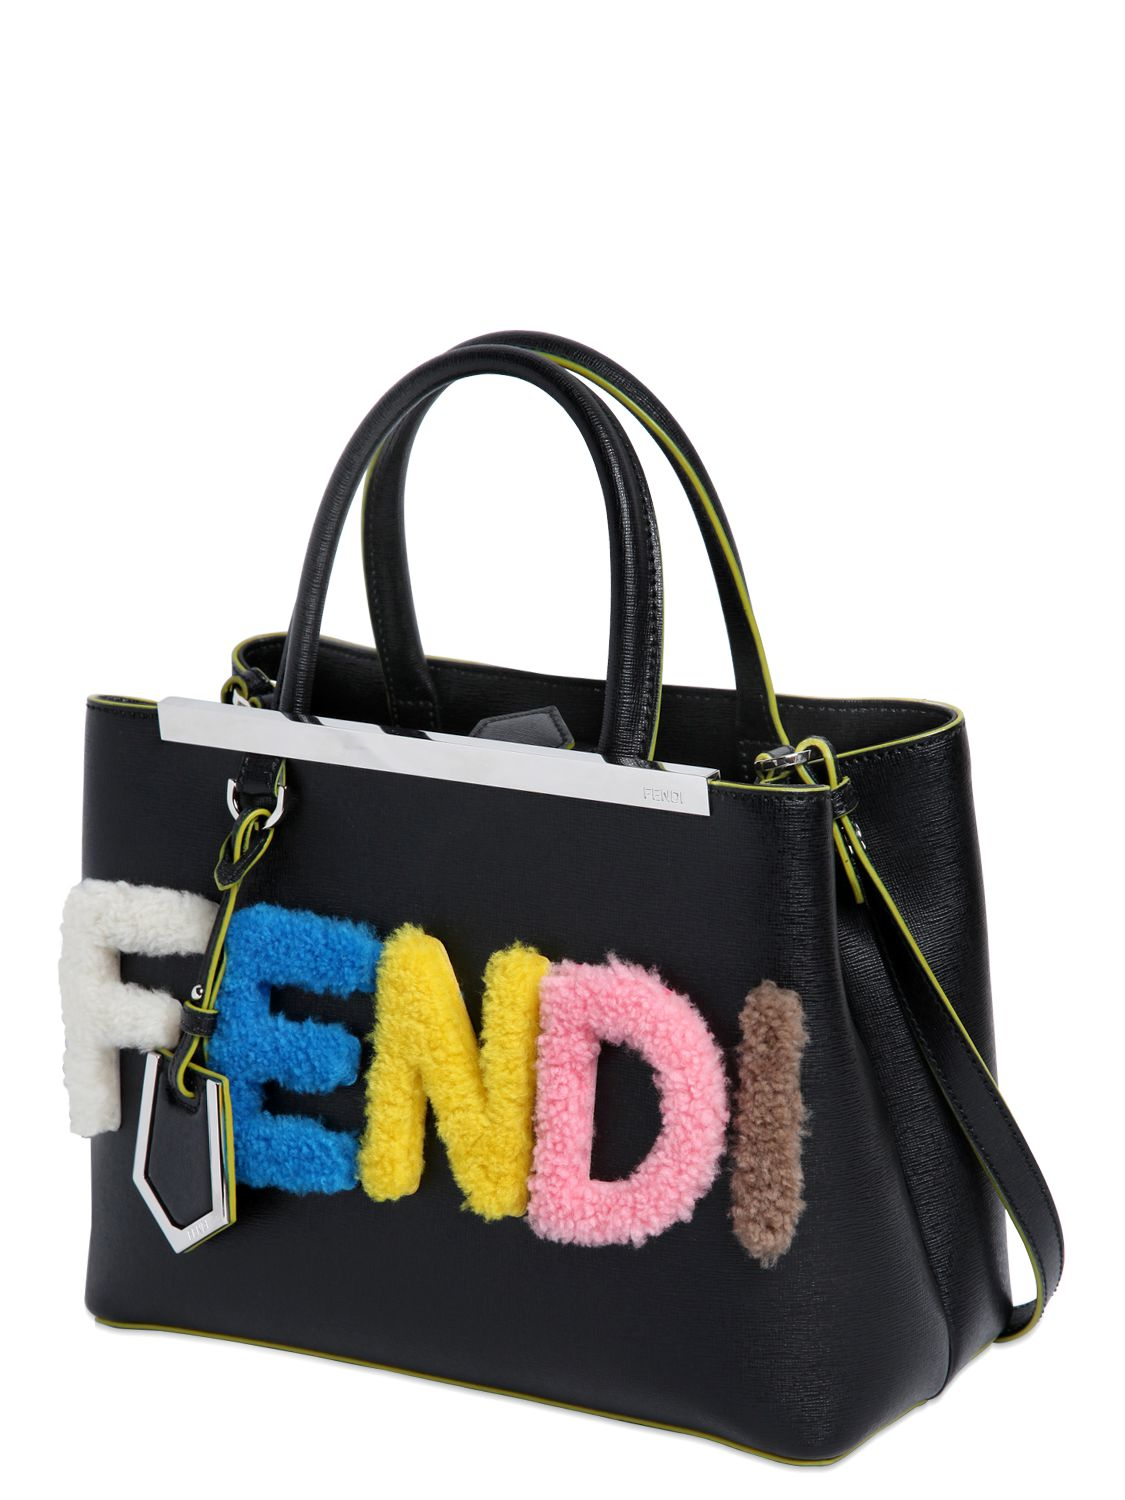 Pre-owned - Baguette shearling bag Fendi TgxzacdAkS